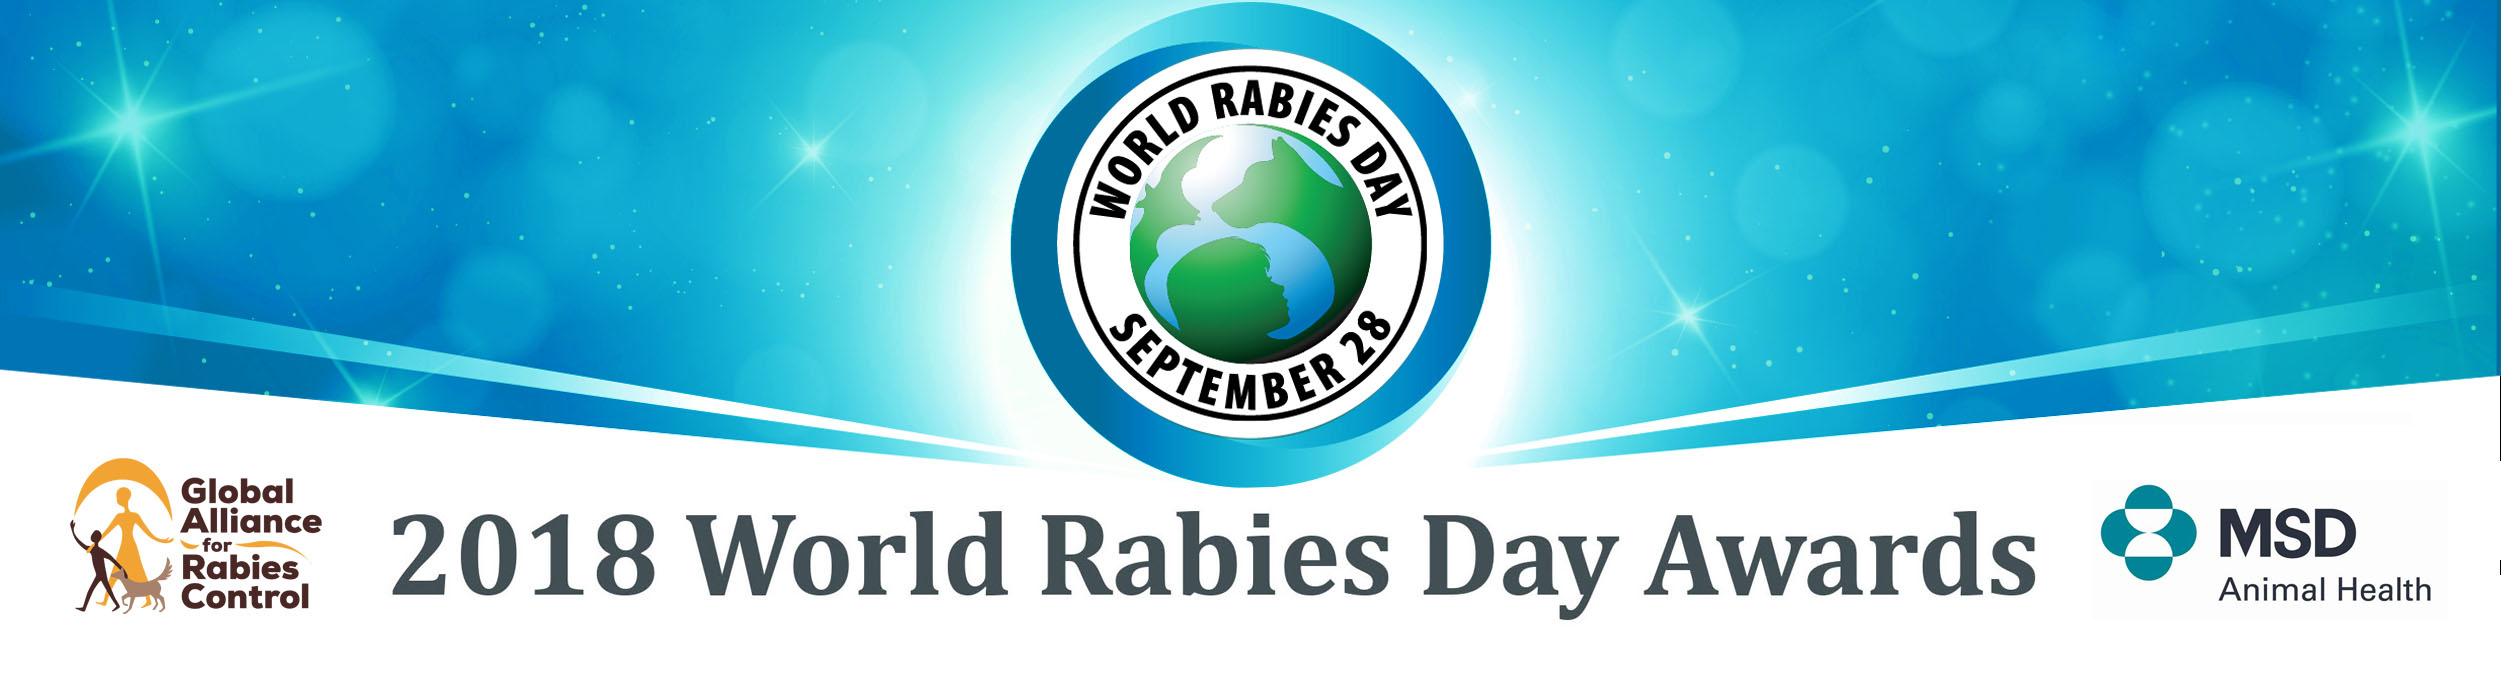 2018 World Rabies Day Awards banner